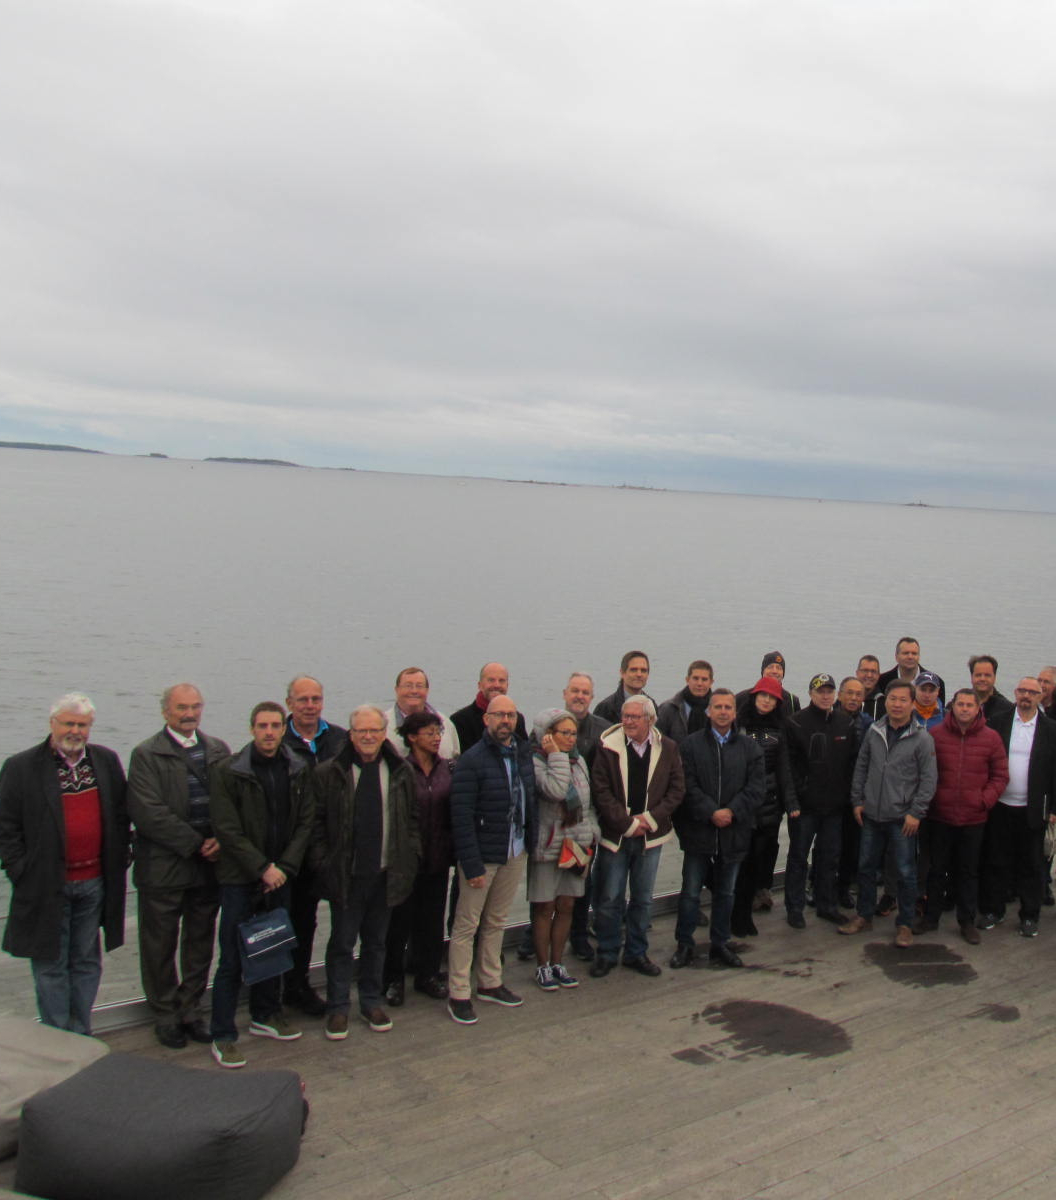 KNX National Group Conference 2018 in Helsinki